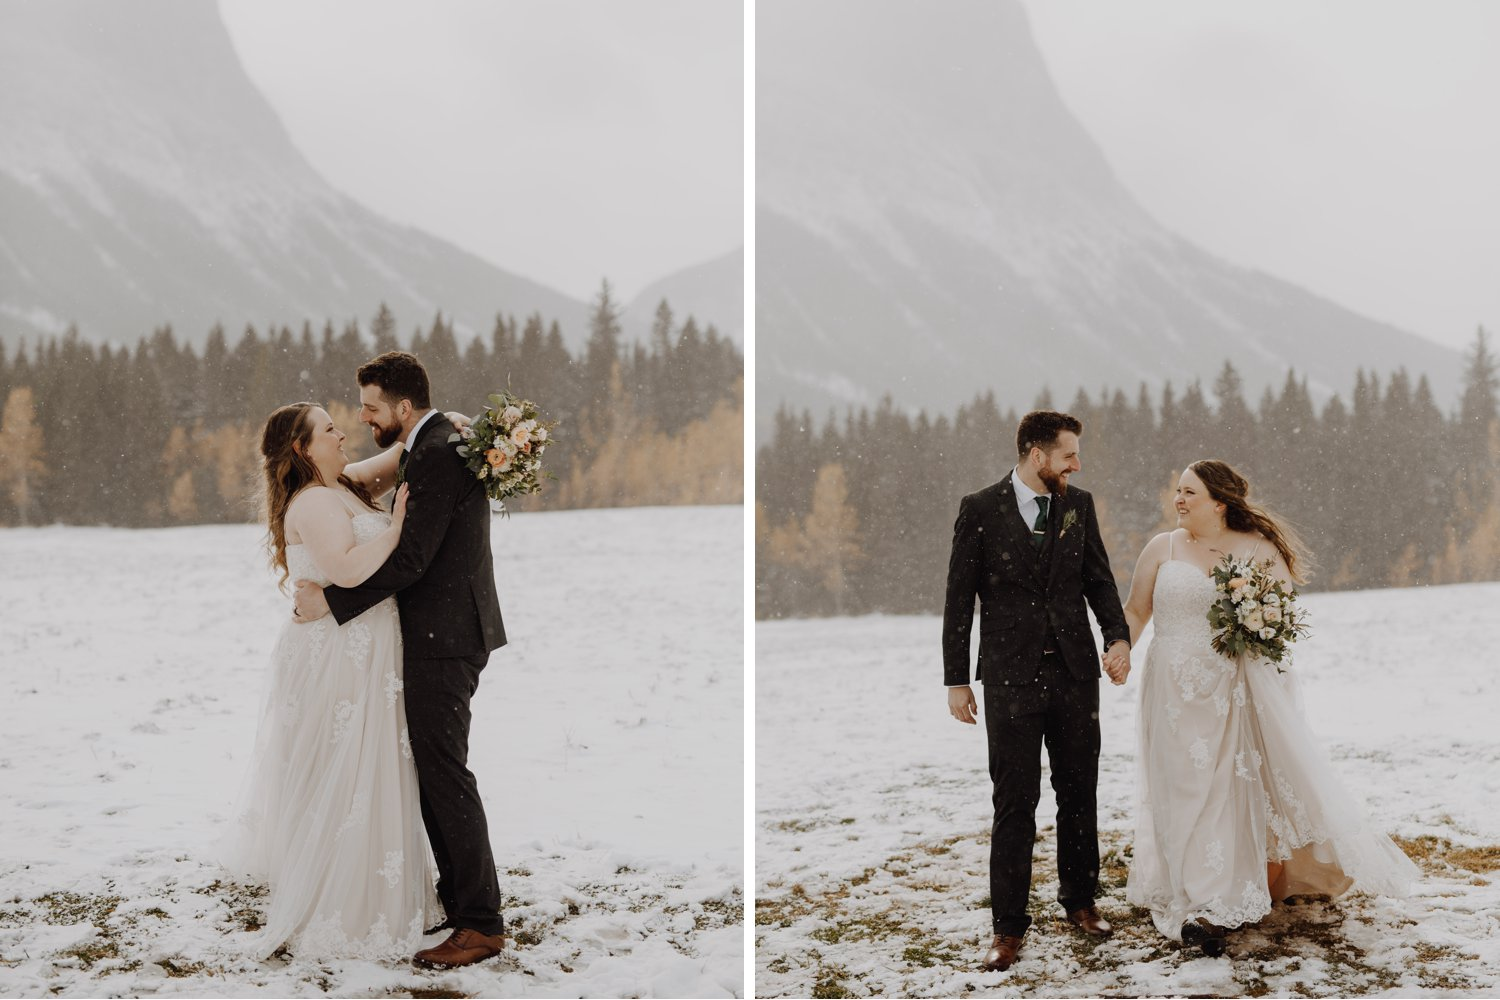 winter wedding in the snowy mountains